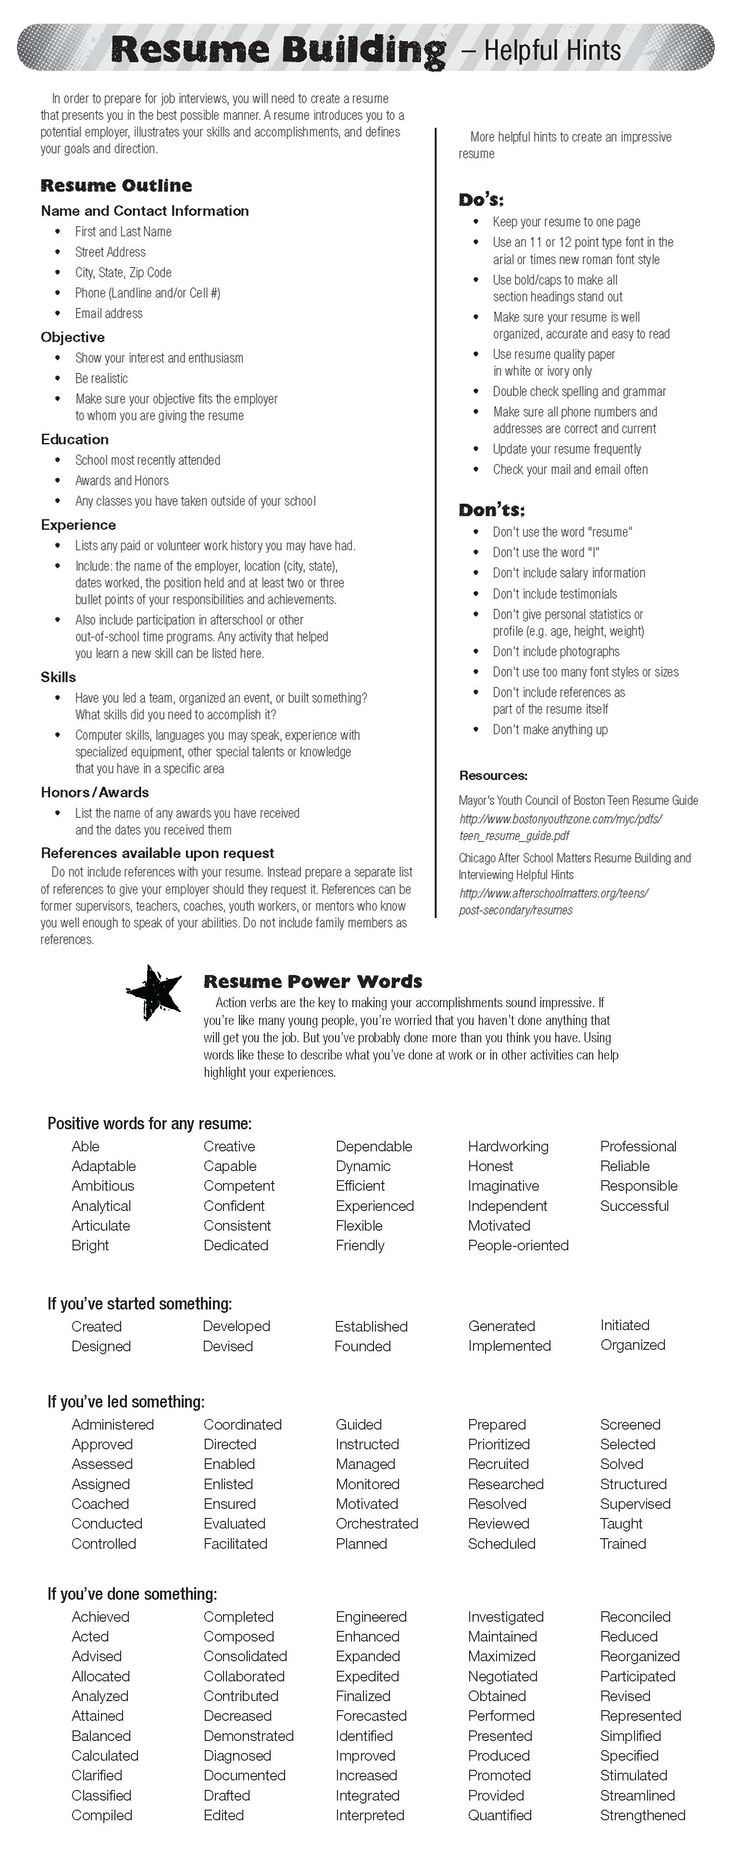 Opposenewapstandardsus  Stunning  Ideas About Resume On Pinterest  Cv Format Resume Cv And  With Luxury  Ideas About Resume On Pinterest  Cv Format Resume Cv And Resume Templates With Agreeable Most Popular Resume Format Also Cover Resume Letter In Addition Resume Free Template Download And Compliance Manager Resume As Well As Resume Sample Template Additionally Professional Resume Builder Service From Pinterestcom With Opposenewapstandardsus  Luxury  Ideas About Resume On Pinterest  Cv Format Resume Cv And  With Agreeable  Ideas About Resume On Pinterest  Cv Format Resume Cv And Resume Templates And Stunning Most Popular Resume Format Also Cover Resume Letter In Addition Resume Free Template Download From Pinterestcom